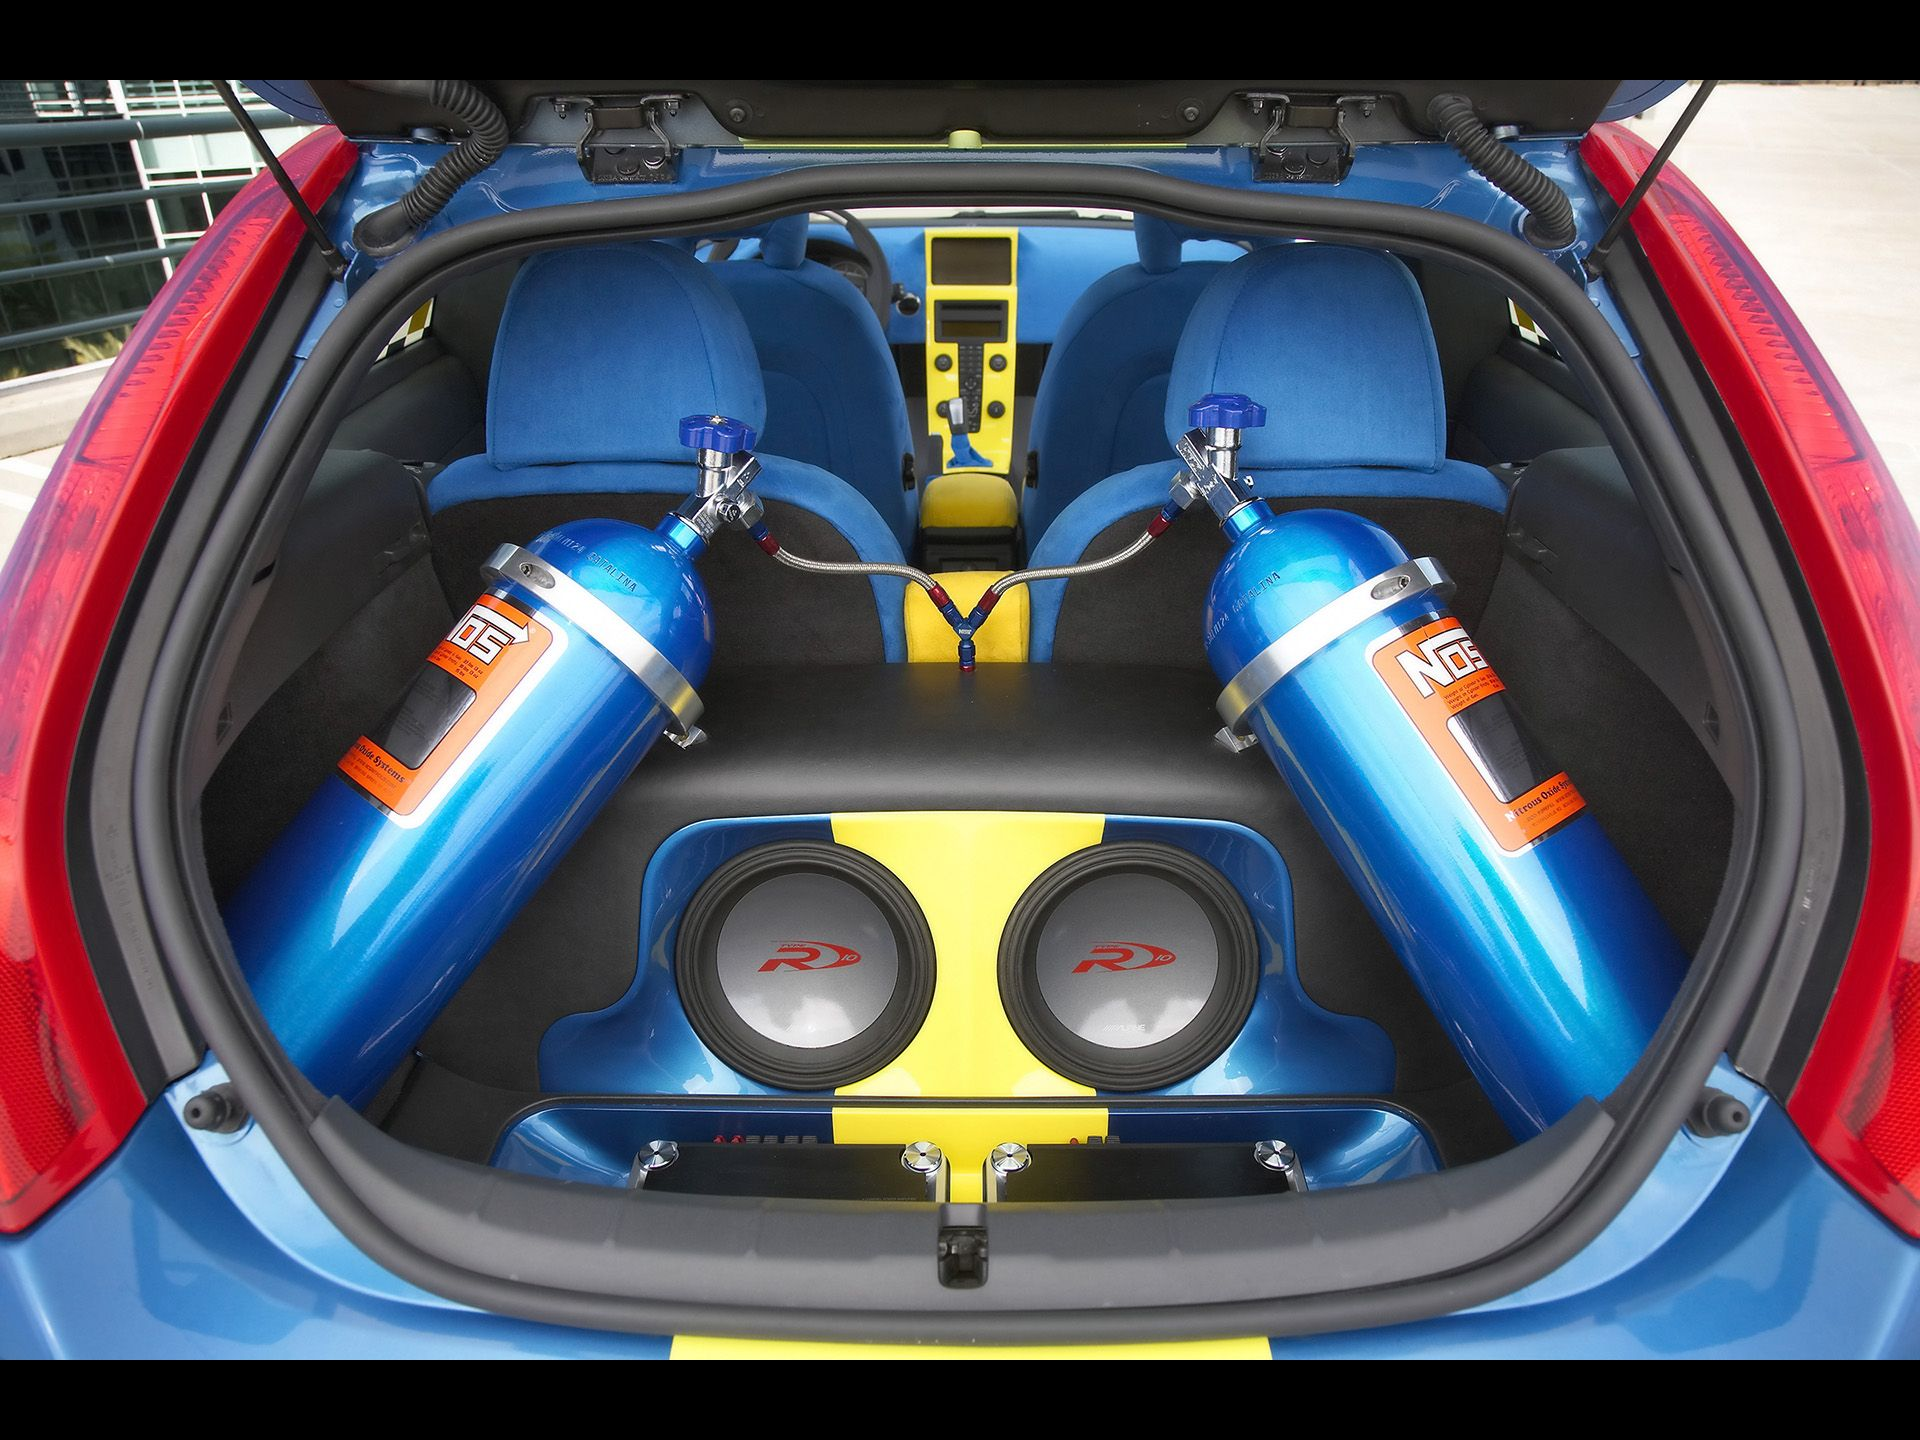 2006 Ipd Volvo C30 Concept Nitrous Oxide Canisters And Custom Stereo System 1920x1440 Wallpaper Car Audio Systems Custom Car Audio Volvo C30